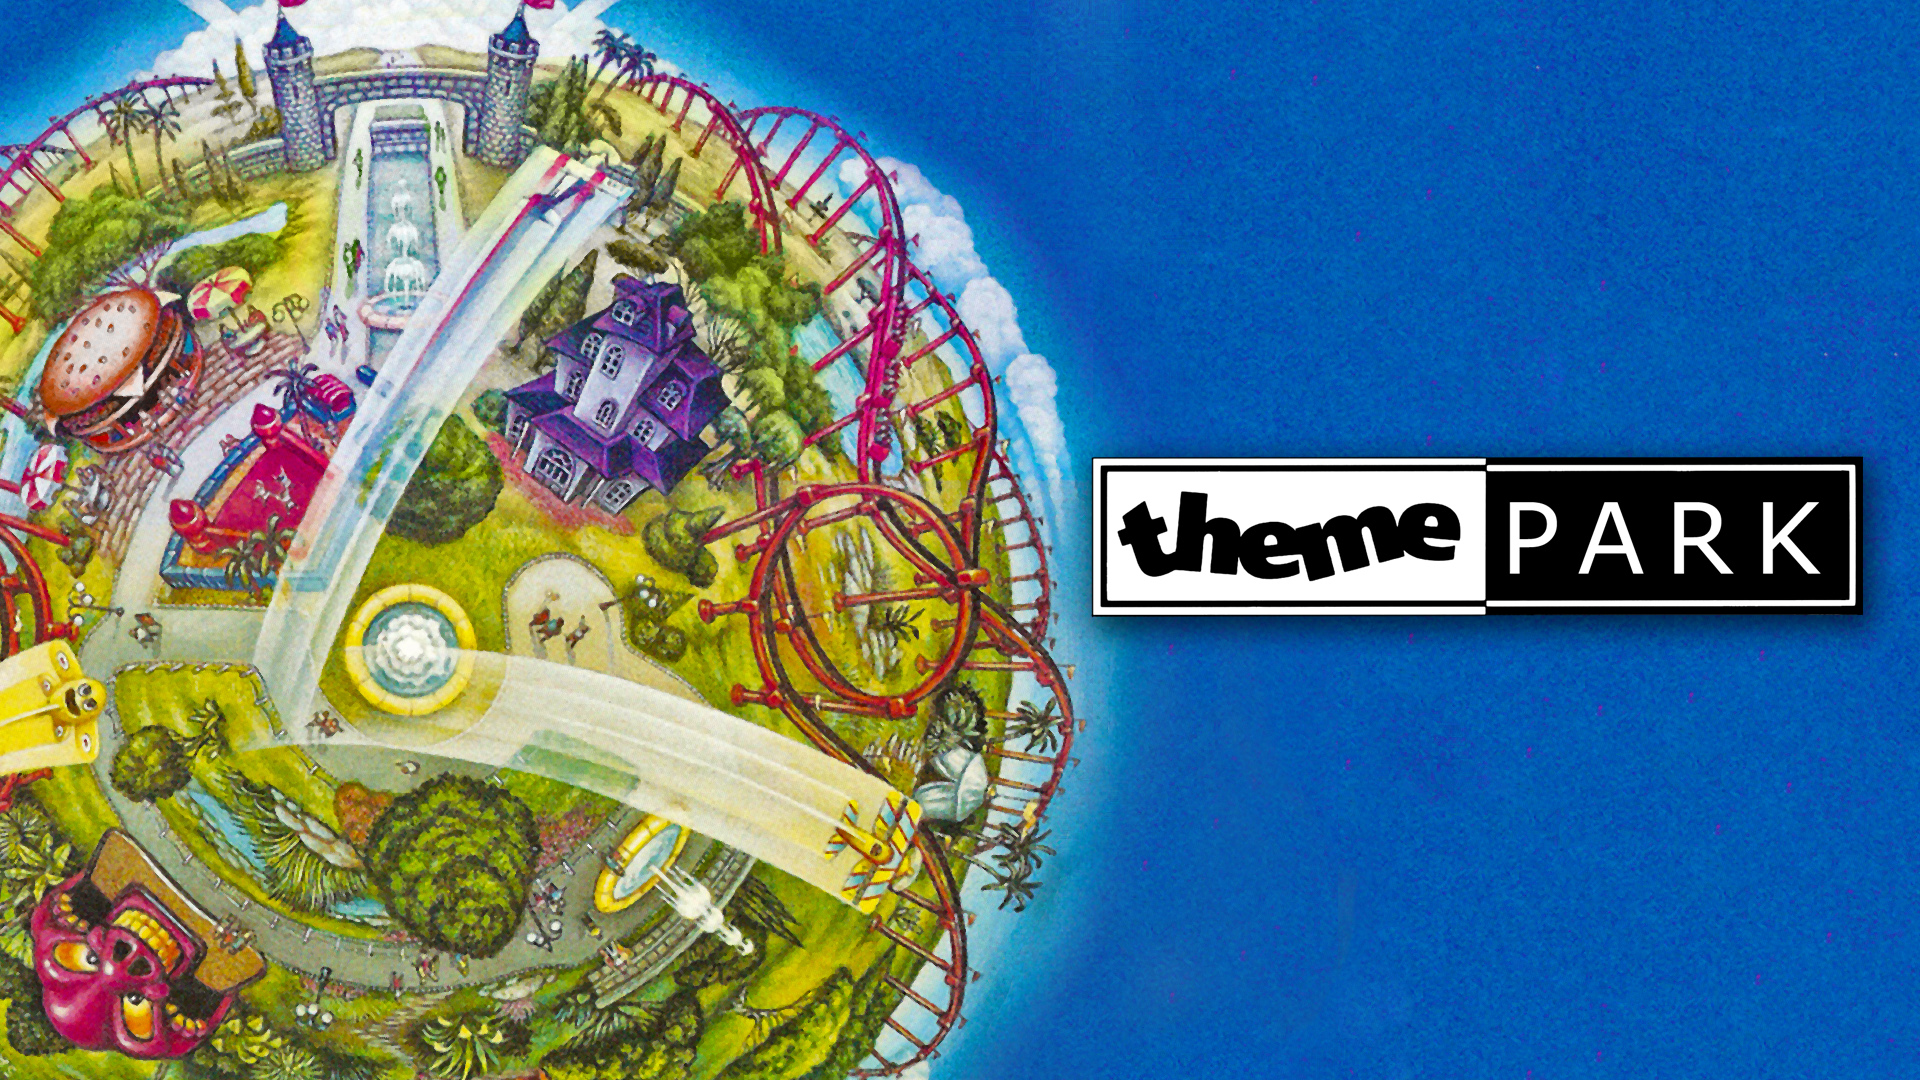 Theme Park HD Wallpaper Background Image 1920x1080 ID669221 1920x1080